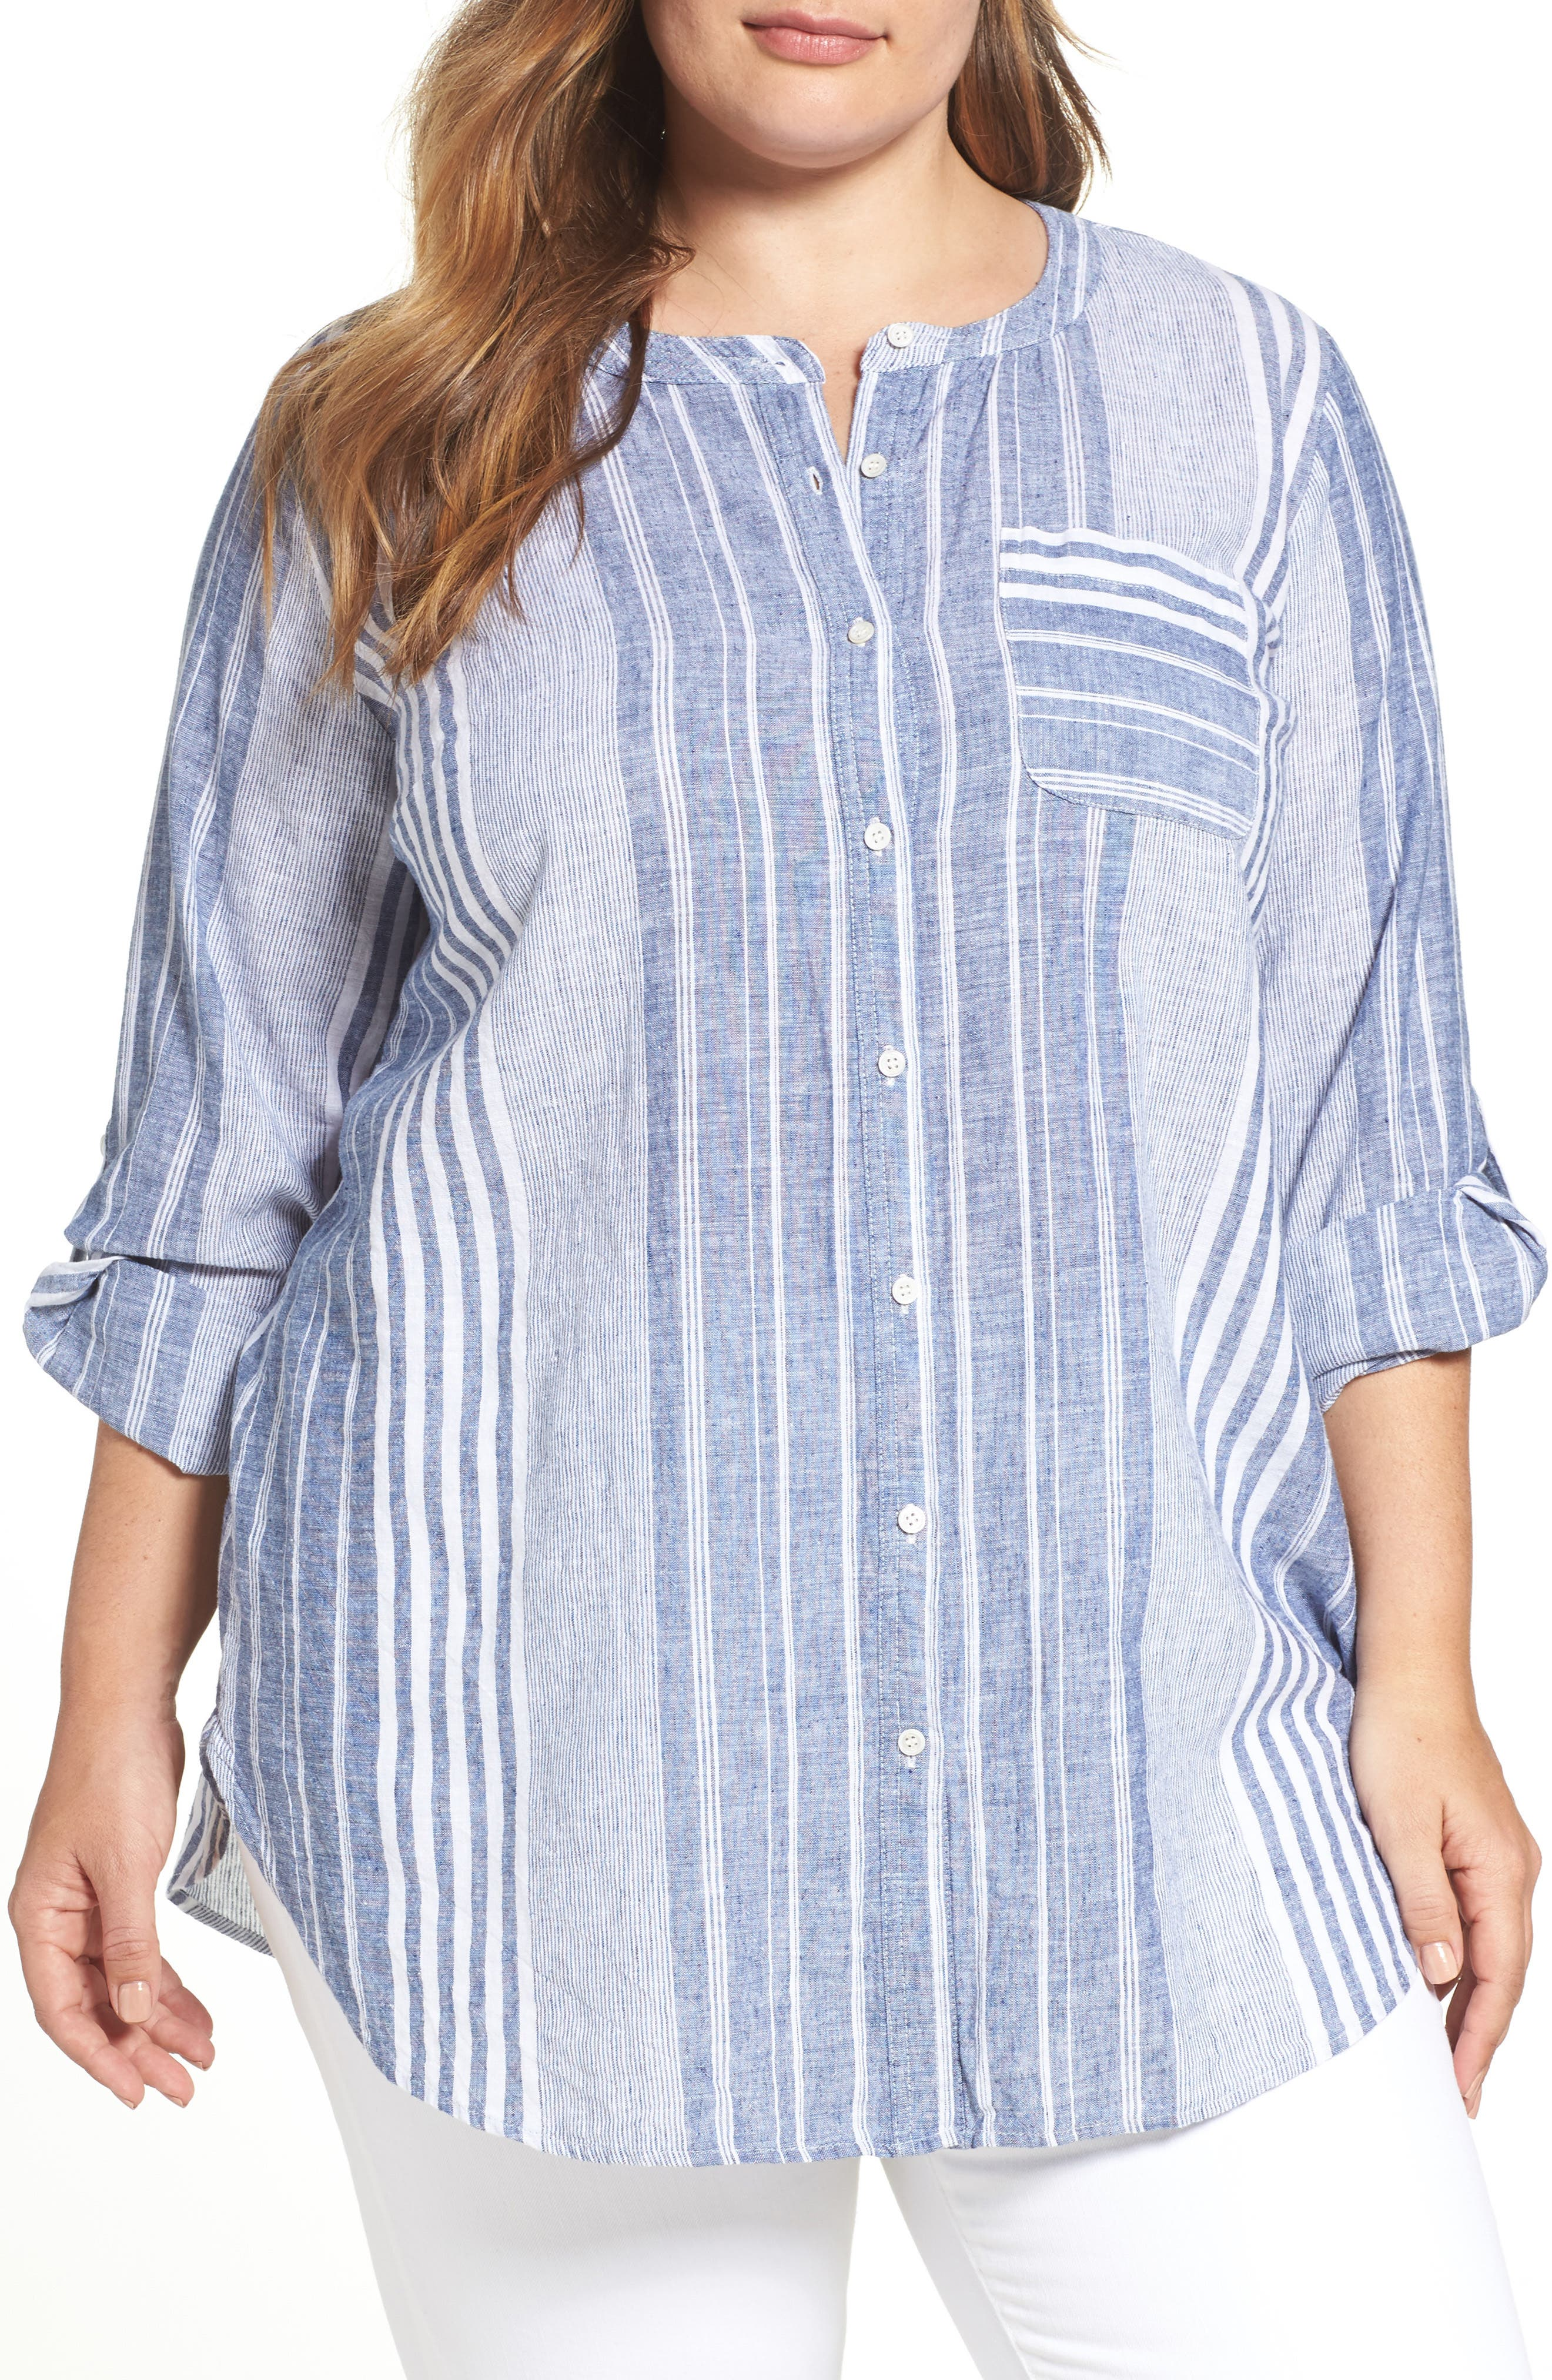 Main Image - Two by Vince Camuto Variegated Stripe Linen Blend Tunic (Plus Size)